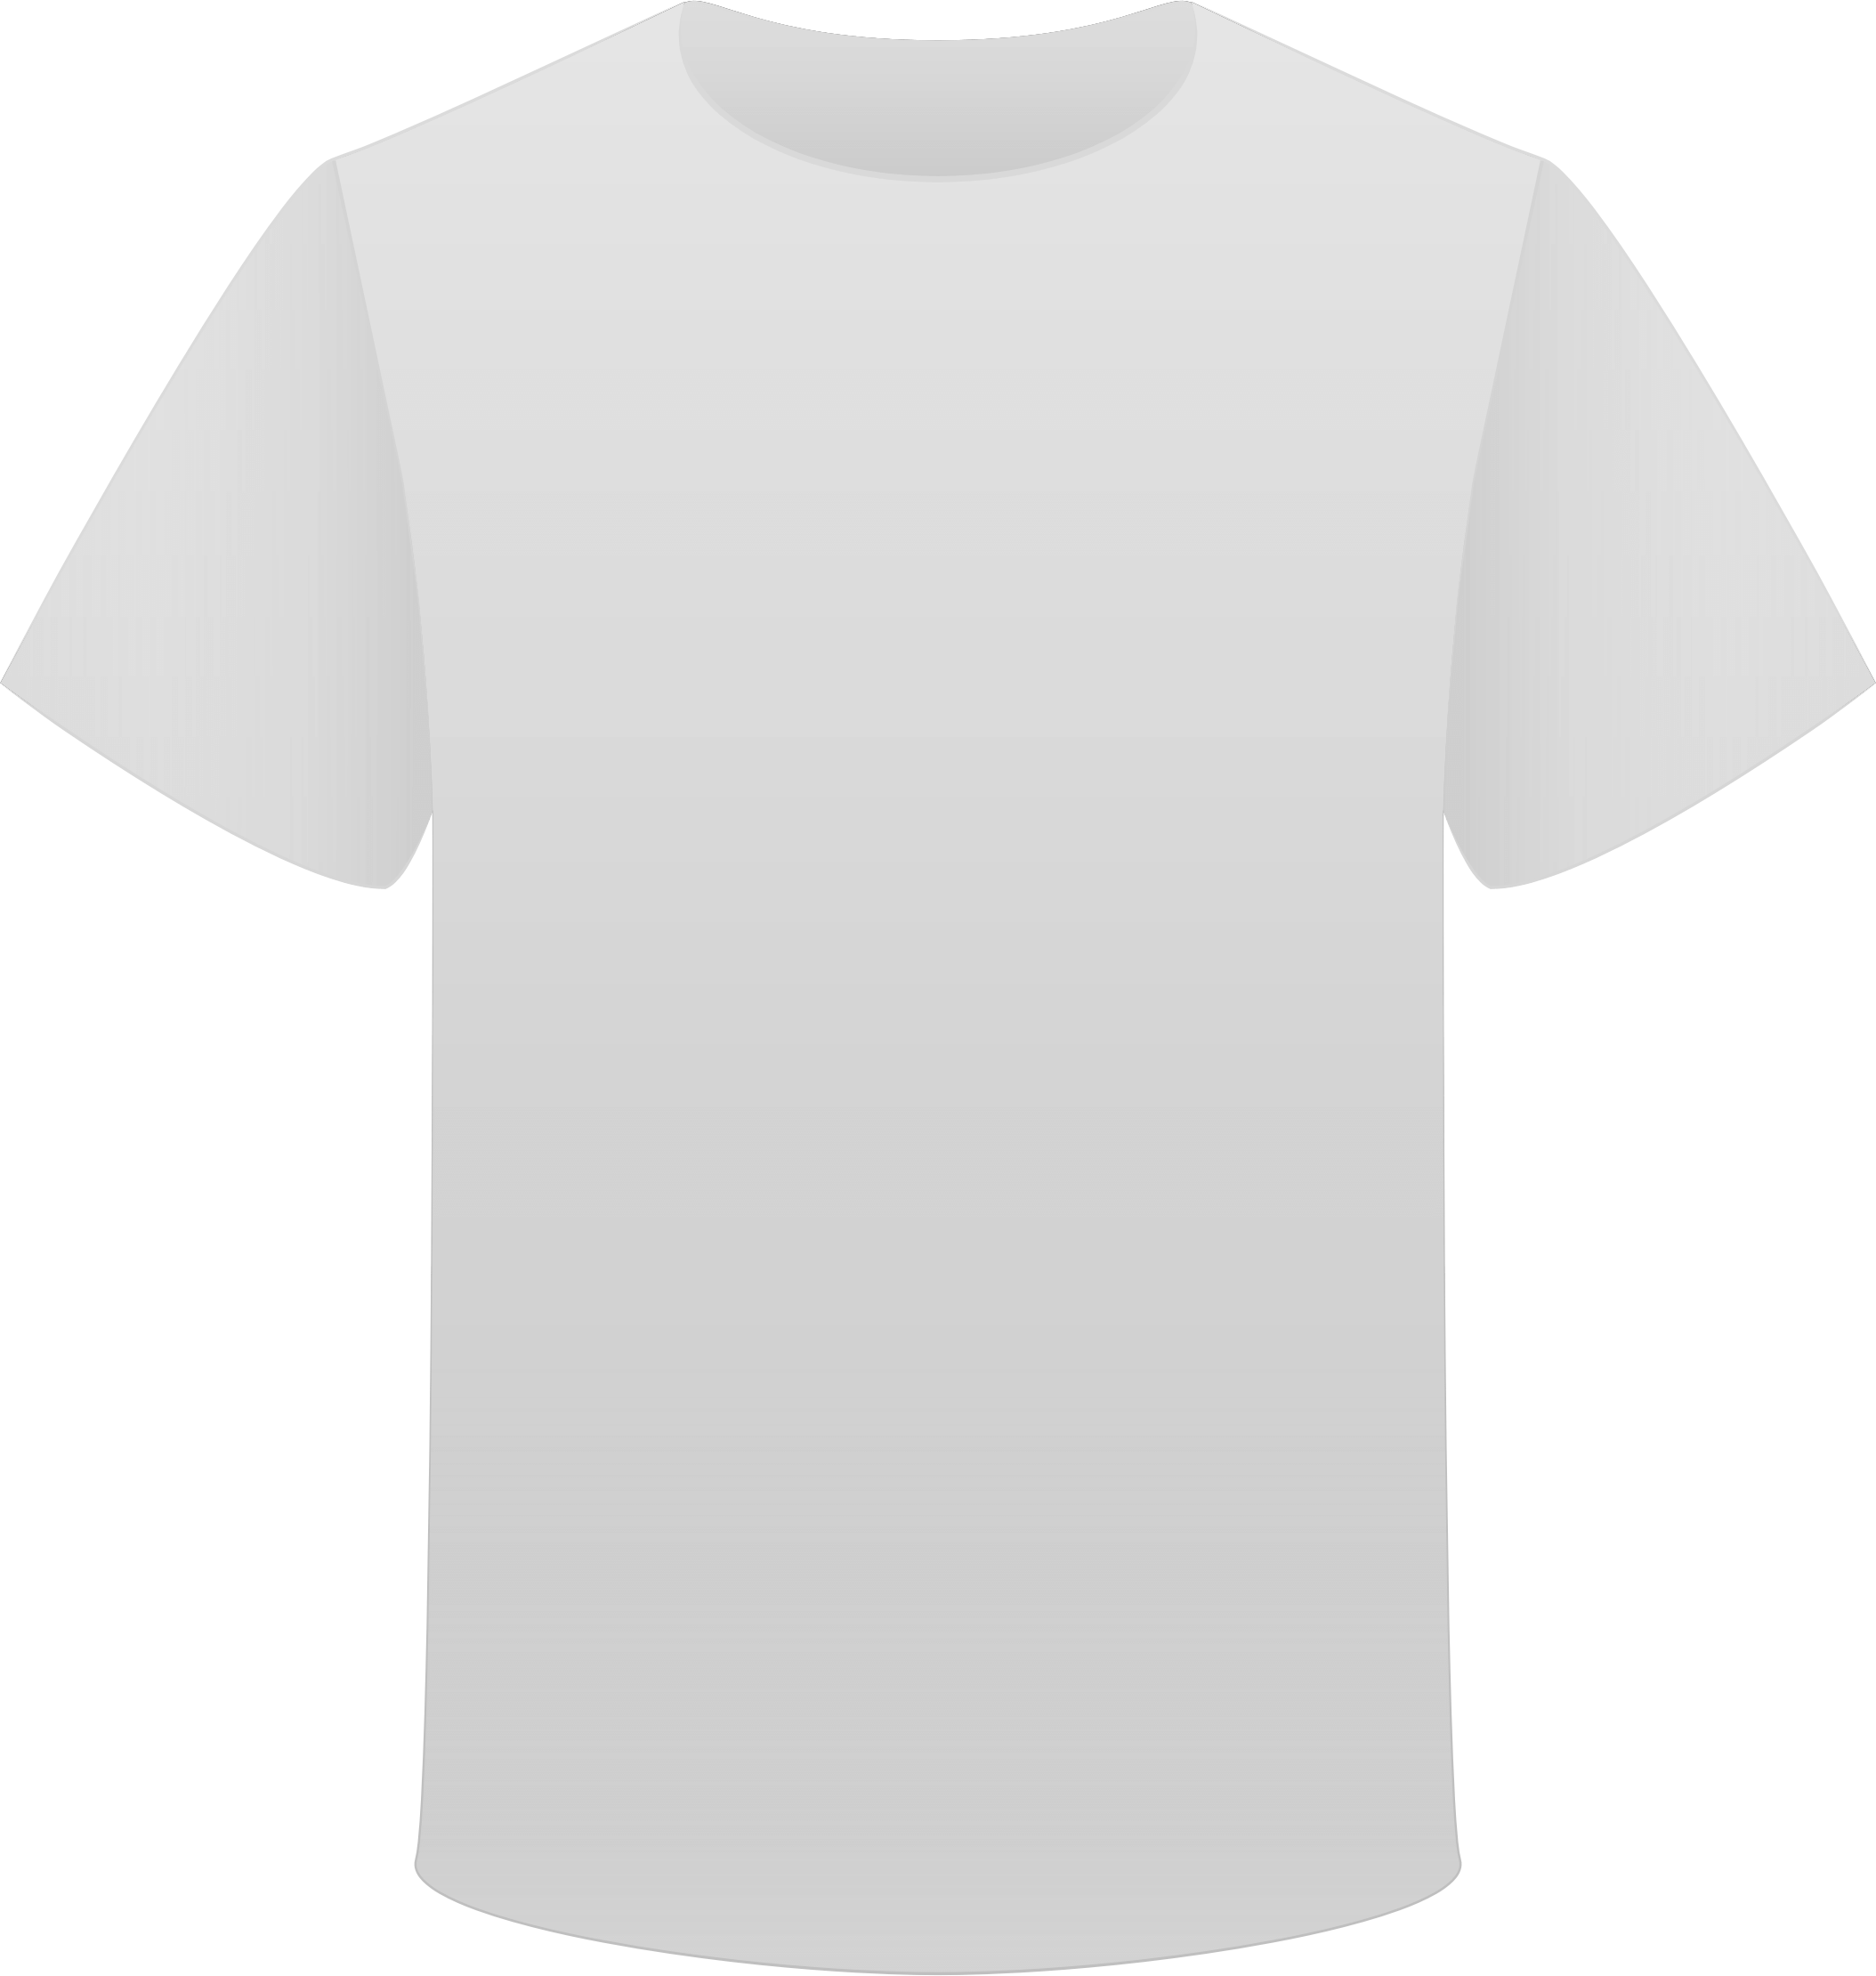 Tshirt White Clipart transparent PNG - StickPNG